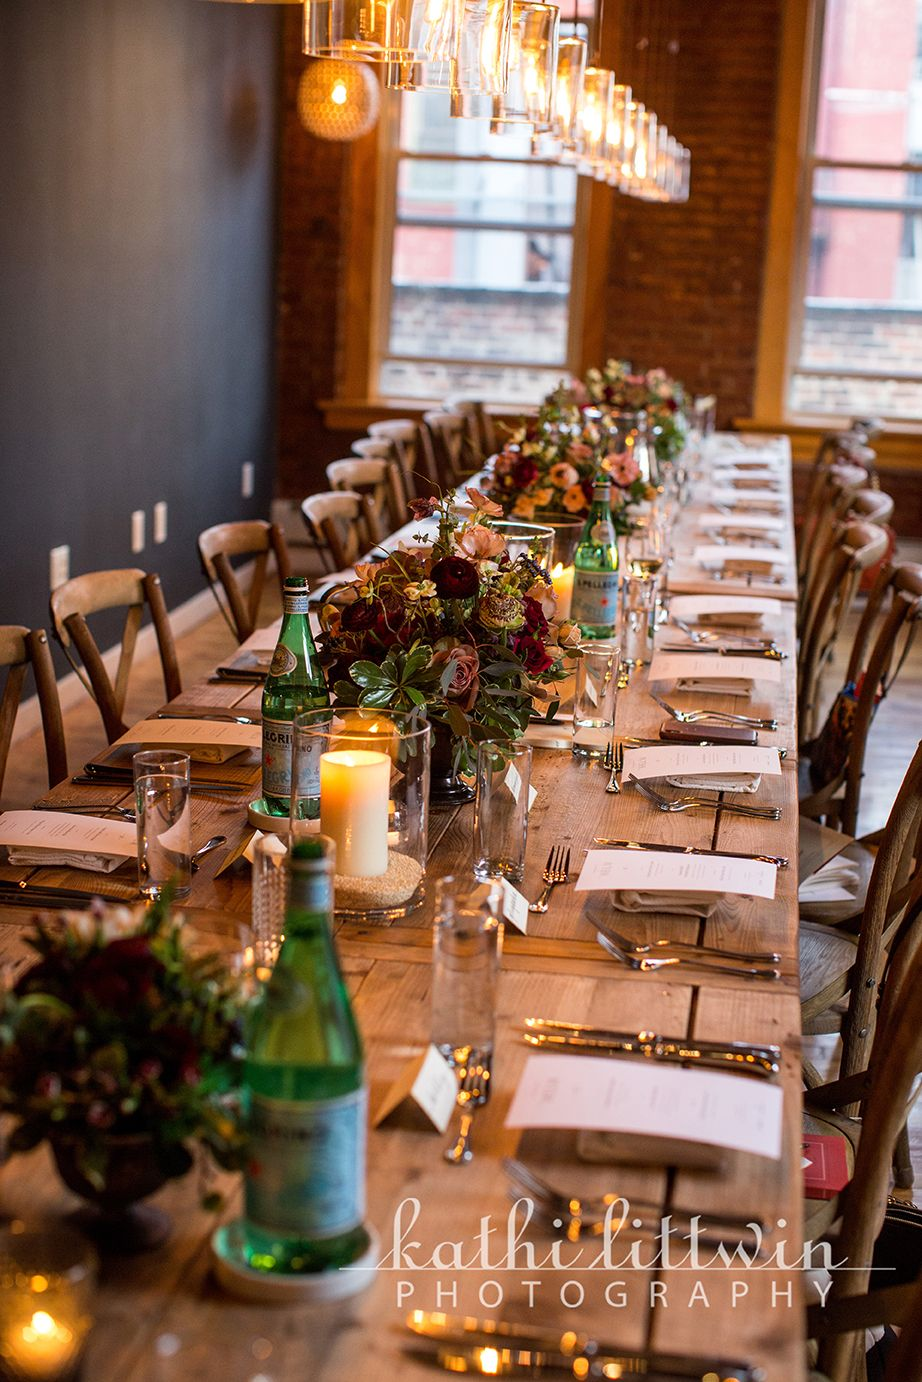 Rustic tabletop decor for a country wedding or a less formal event